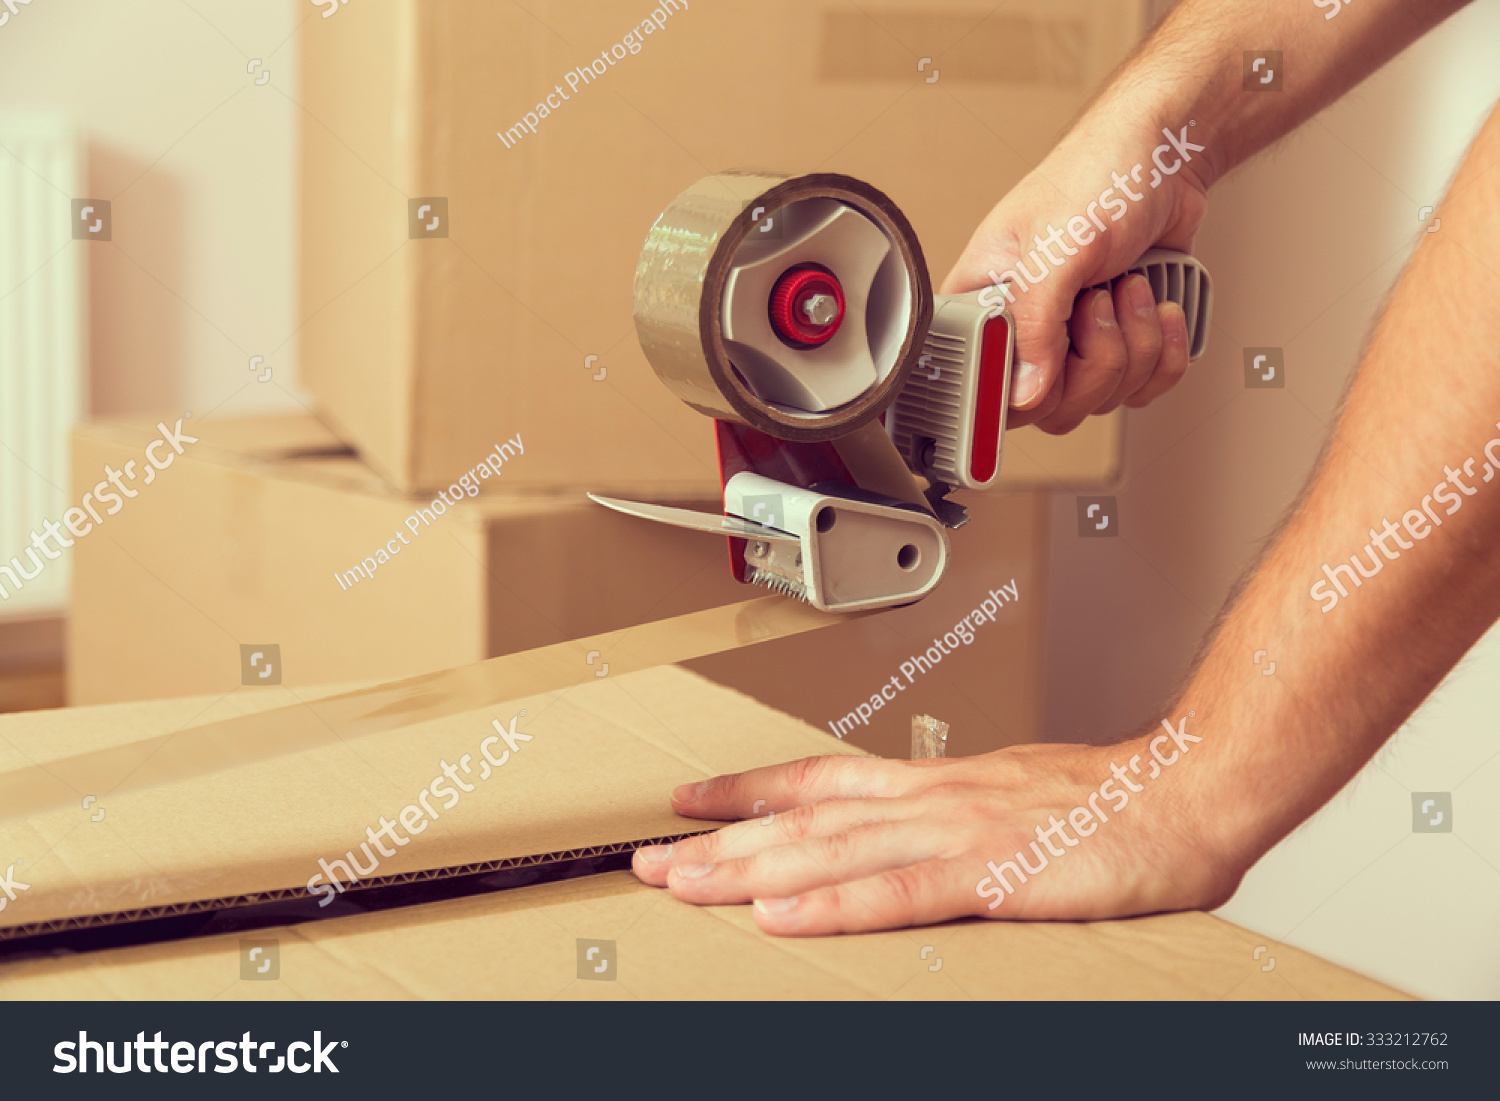 stock-photo-close-up-of-a-guy-s-hands-holding-packing-machine-and-sealing-cardboard-boxes-with-duct-tape-333212762